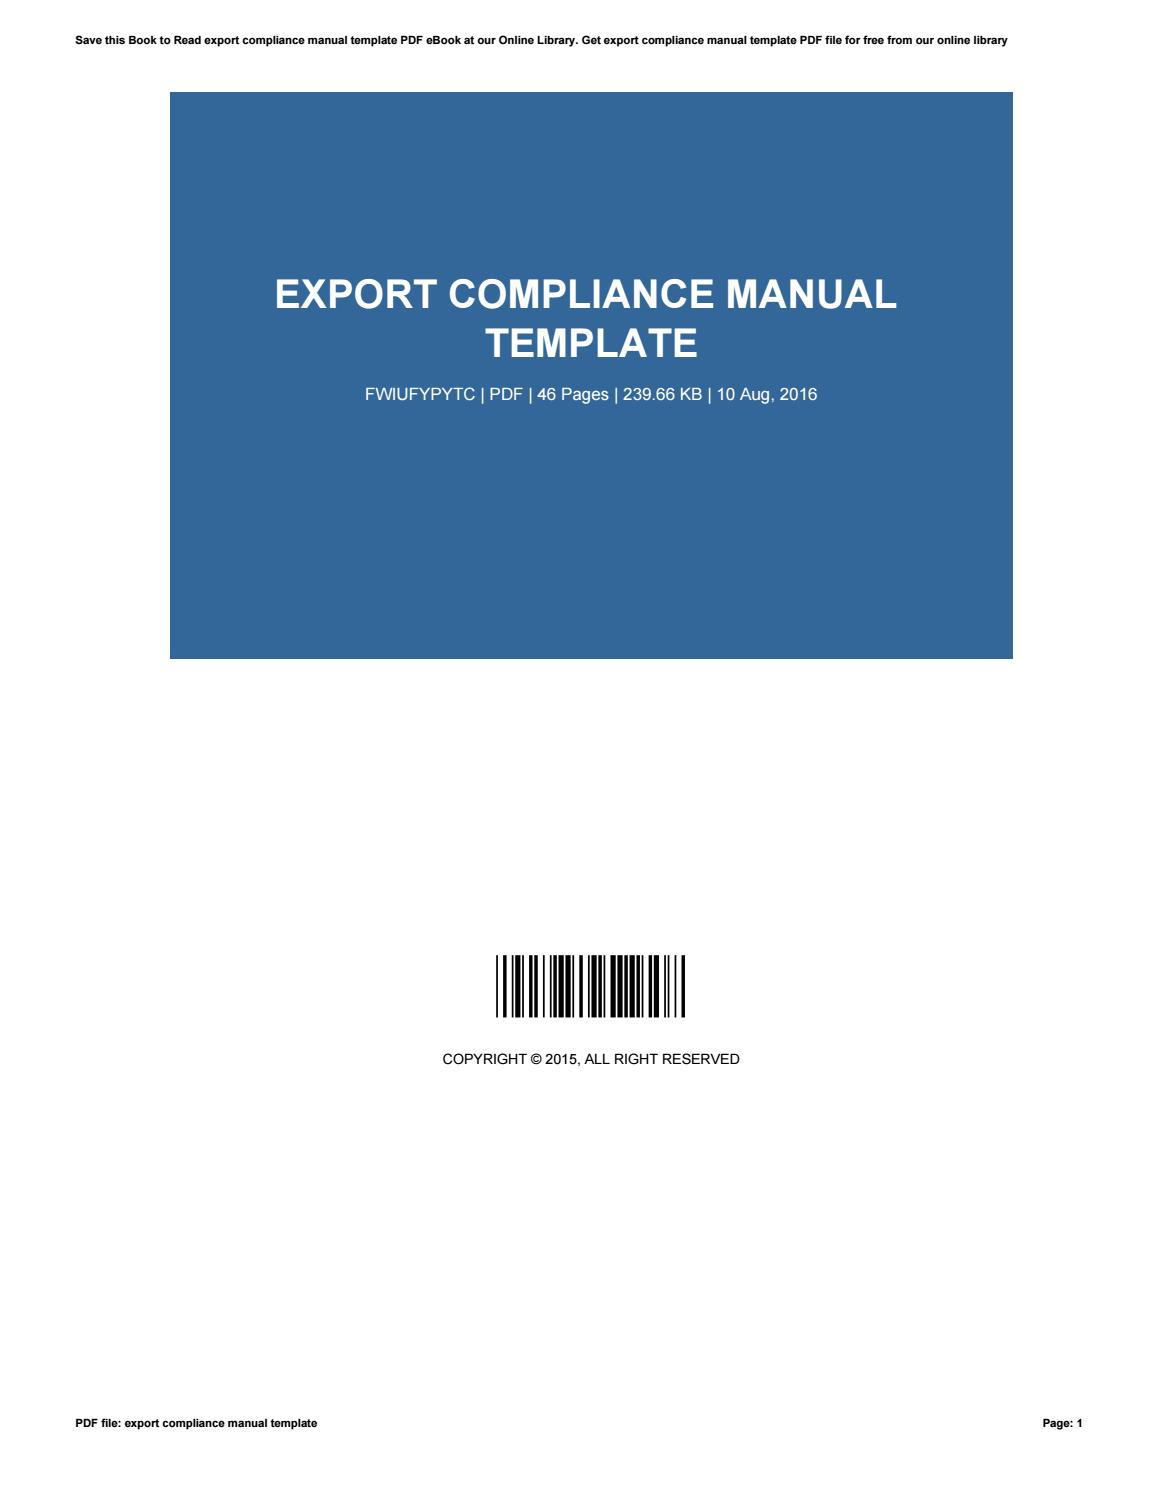 Export Compliance Manual Template